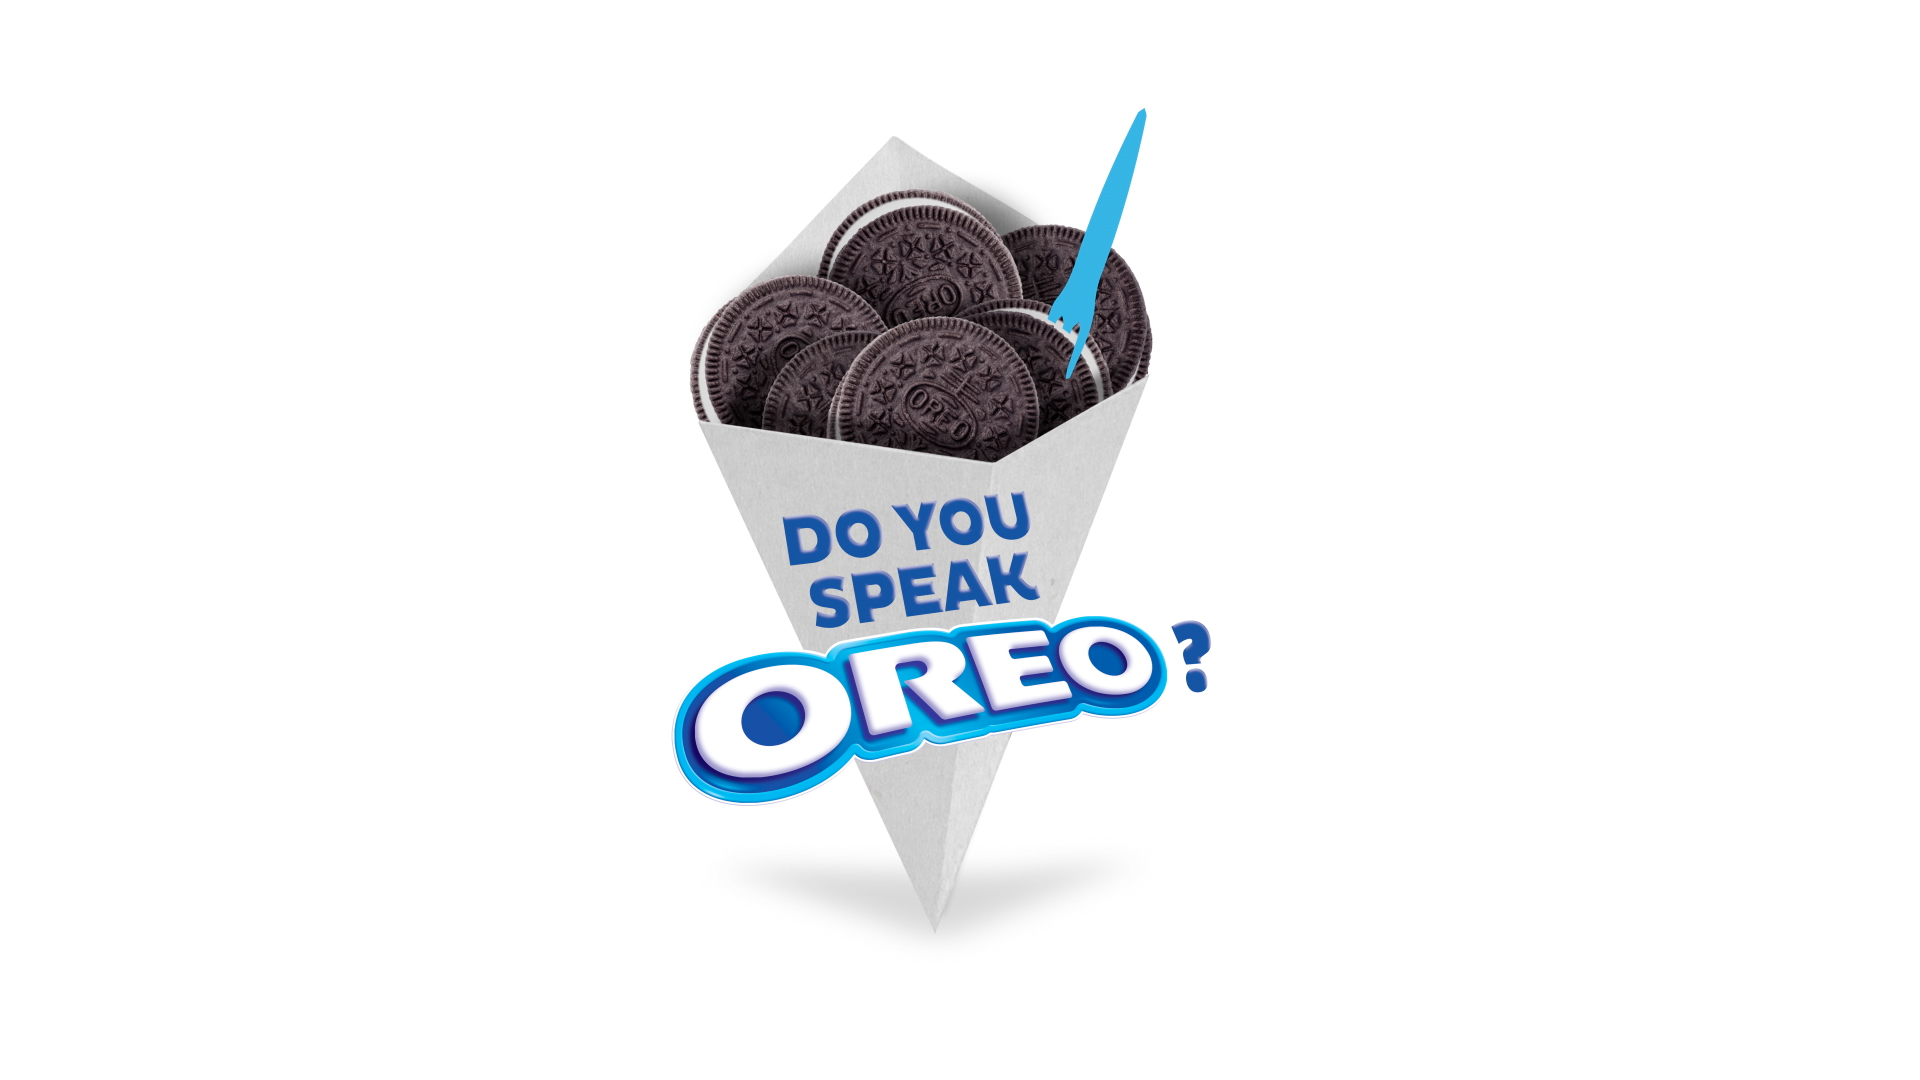 OREO_Case_0002_Layer 9.jpg